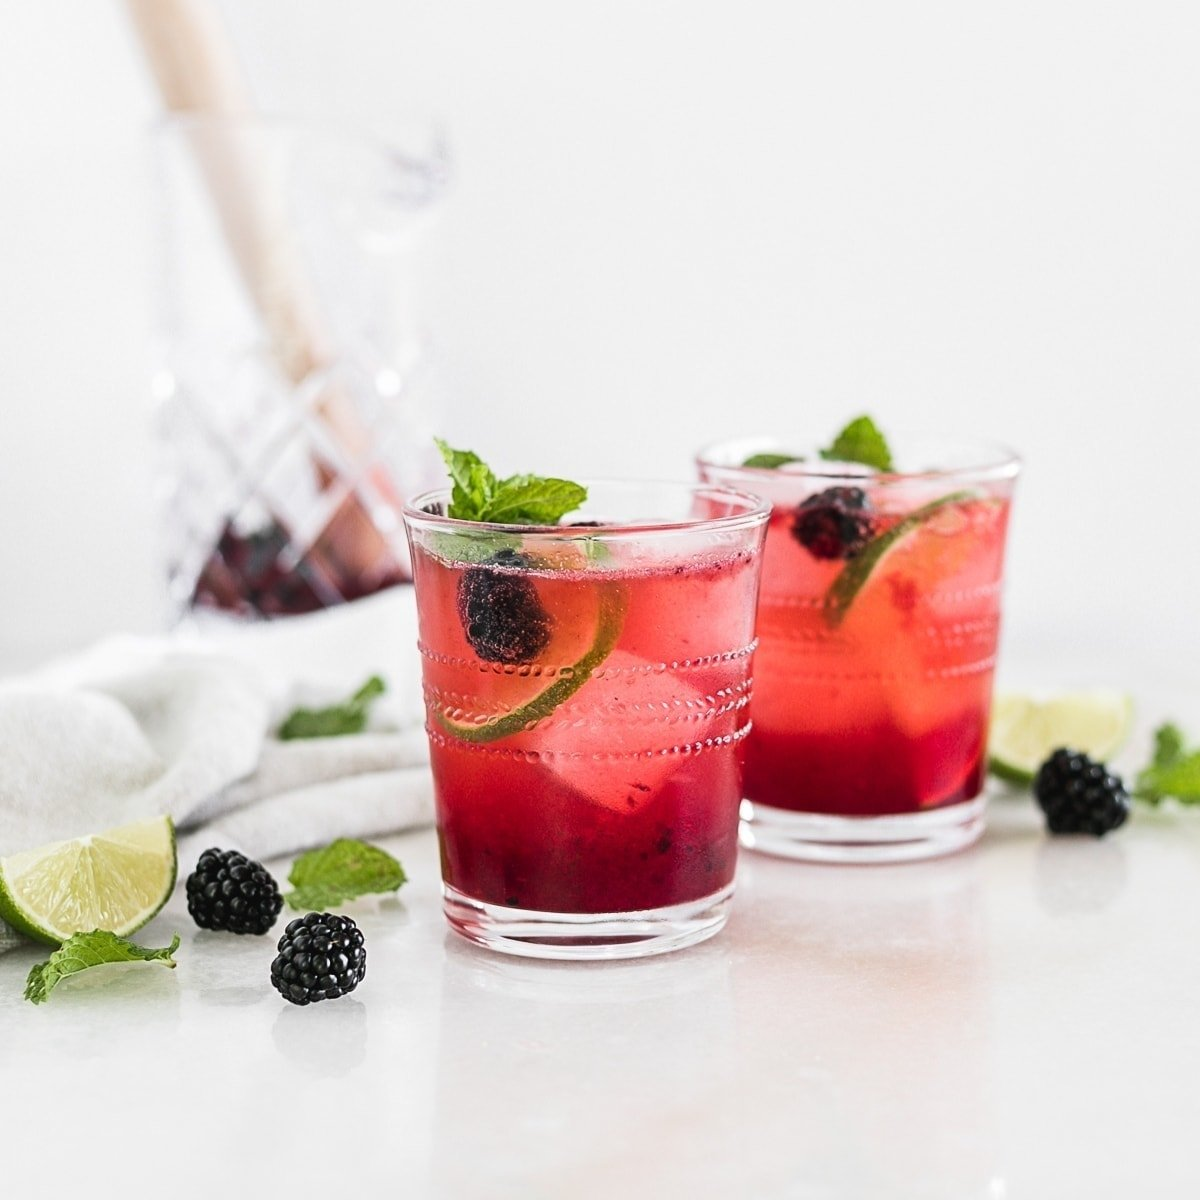 If you enjoy bourbon, you'll love this delicious blackberry bourbon smash, an bourbon cocktail with sweet summer blackberries, lemon and fresh muddled mint topped with bubbly soda. It's an easy and elegant summer sip!